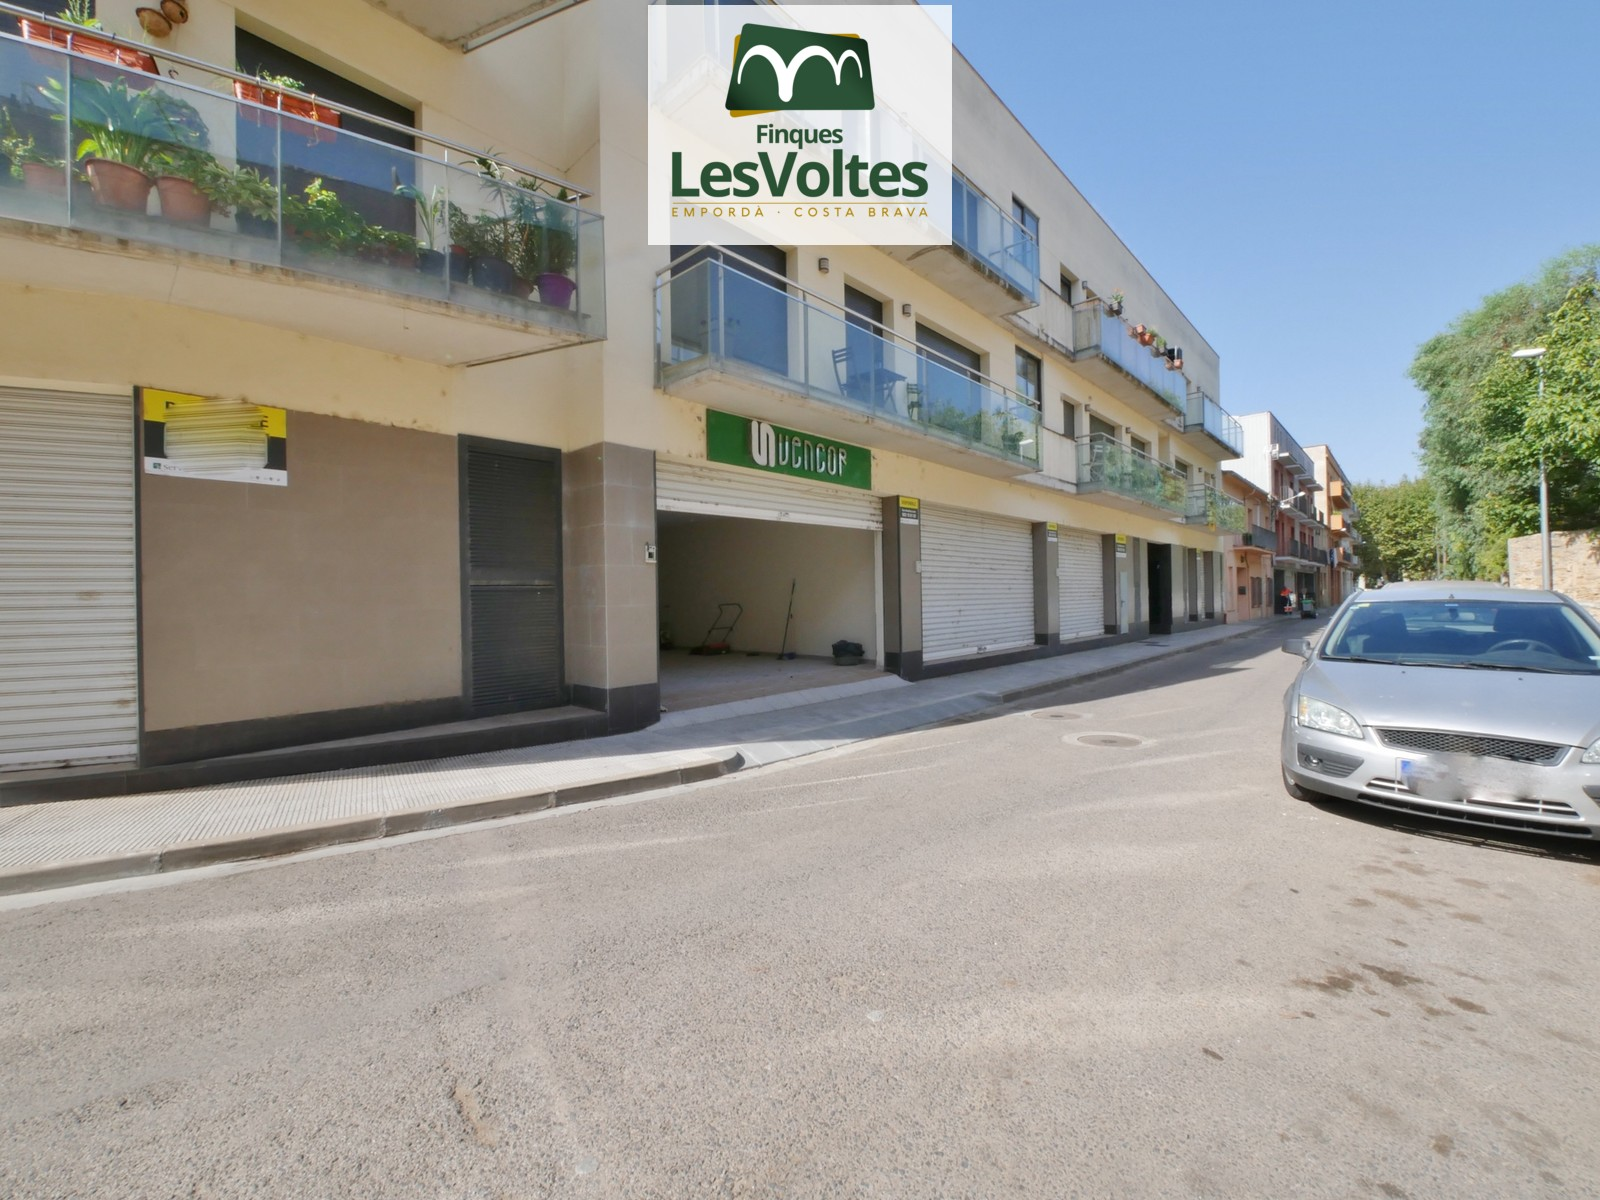 COMMERCIAL PREMISES OF 80 M2 ON THE GROUND FLOOR FOR SALE IN THE CENTER OF THE BISBAL D'EMPORDÀ.